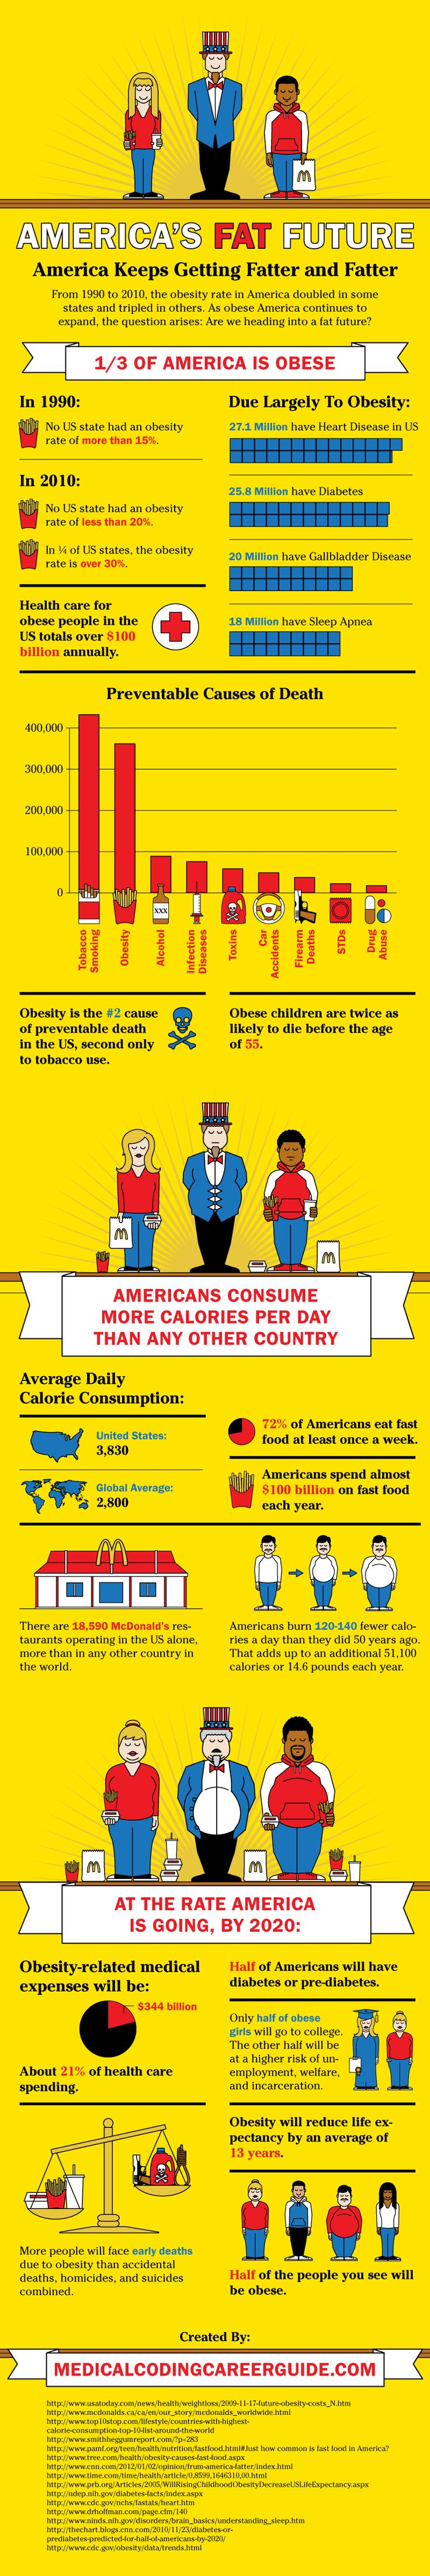 wake up America!Health Care, Healthy Fat, Future Infographic, America Fat, Lose Weights, Healthy Bites, Fast Food, Weights Loss, Fat Future